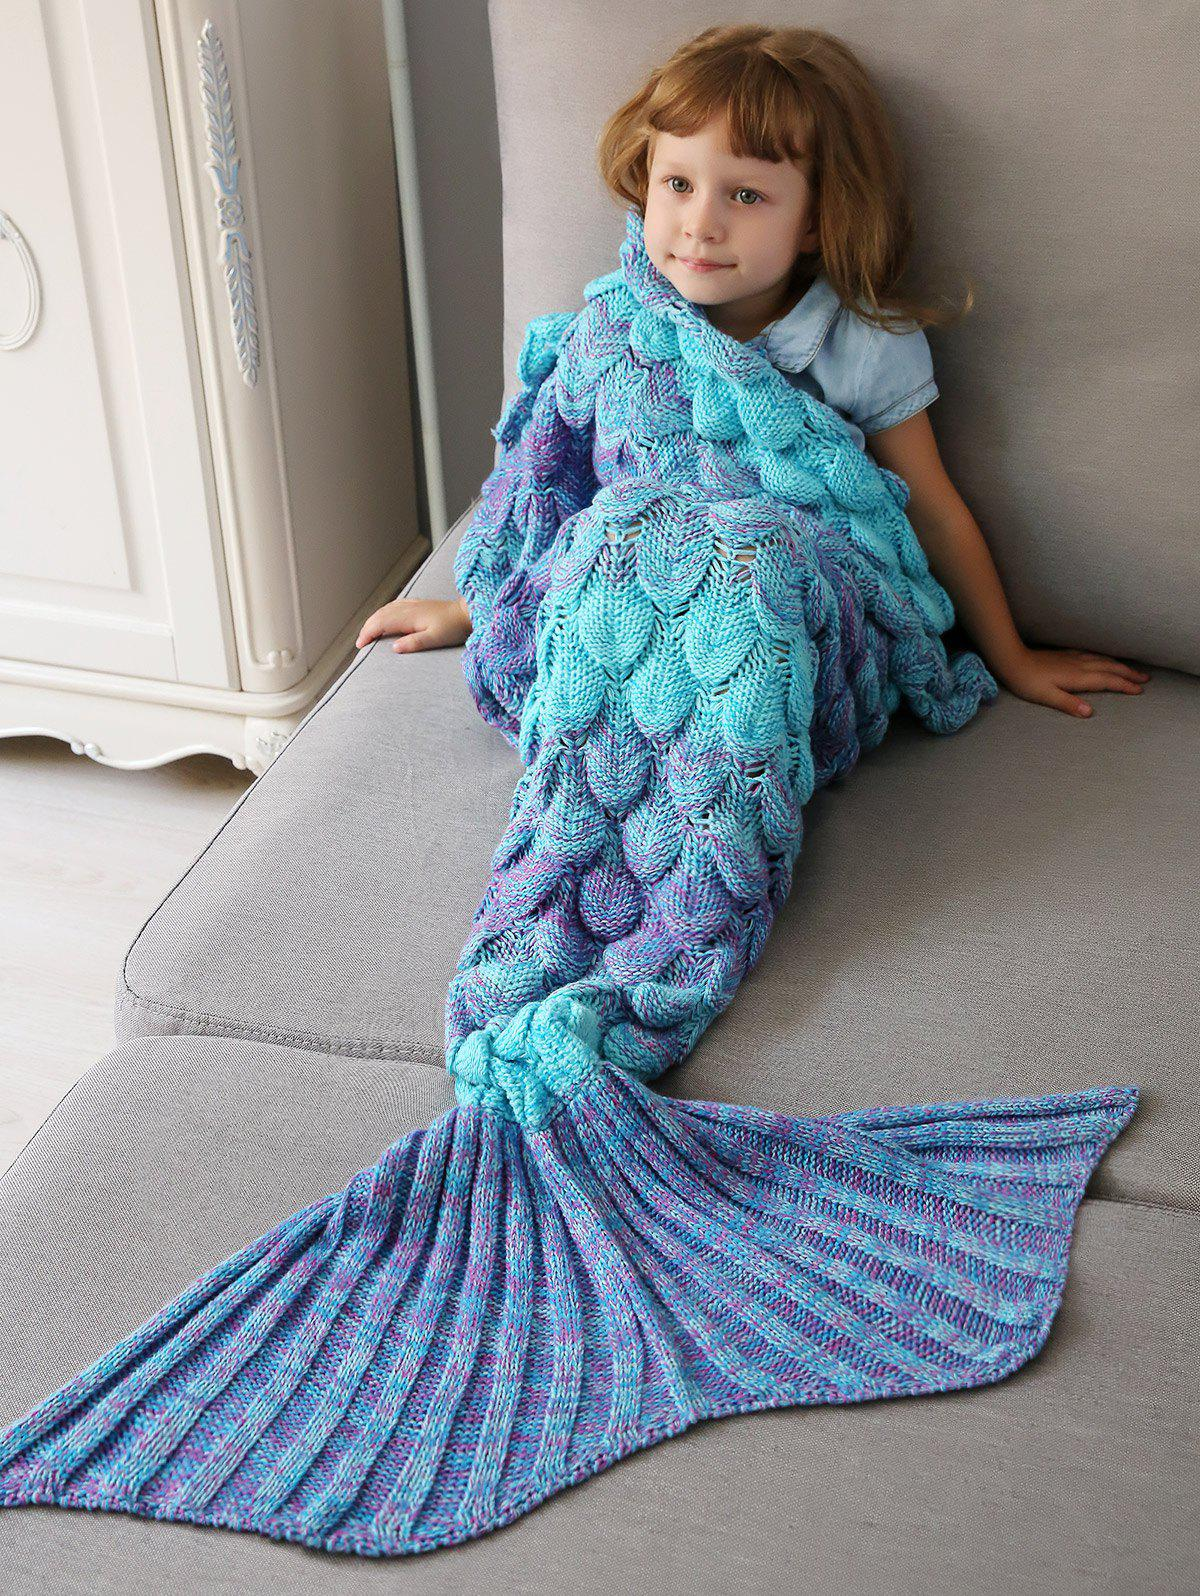 Discount Home Decor Crochet Fish Scale Knit Mermaid Blanket Throw For Kids